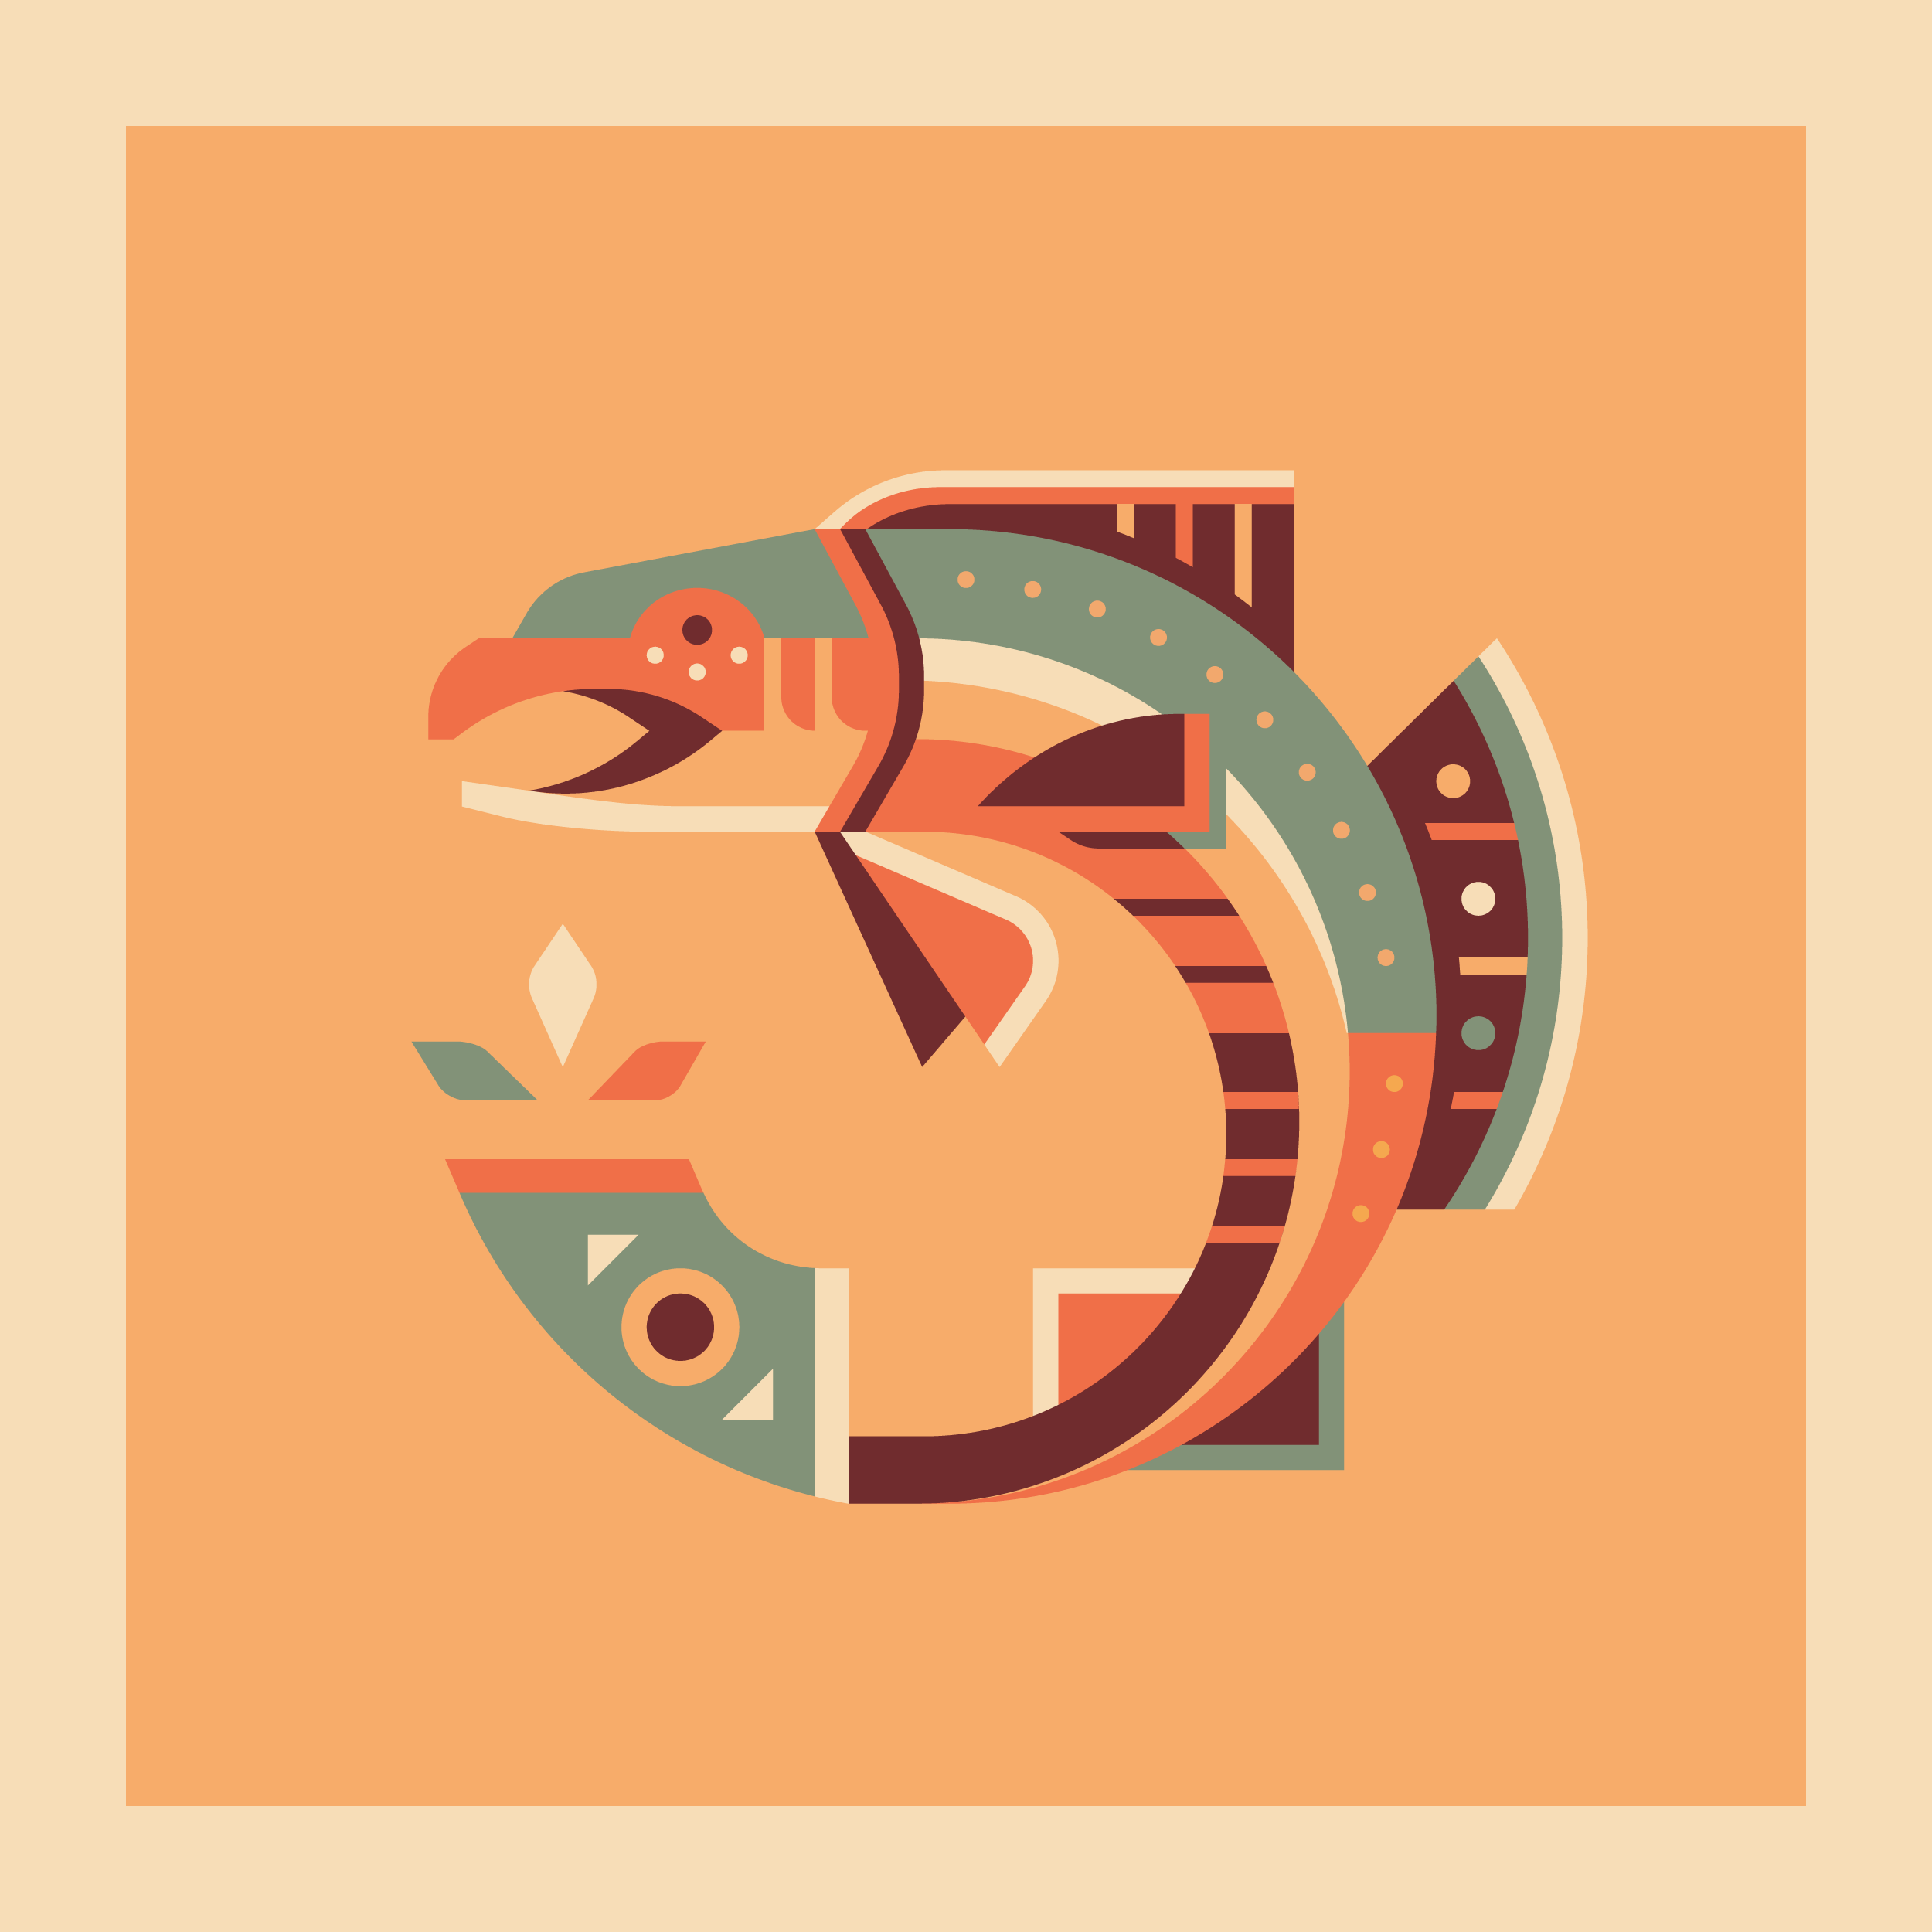 Salmon totem design by Matt Anderson and Canopy Design. Limited color, geometric pattern illustration with Navajo southwest art style.